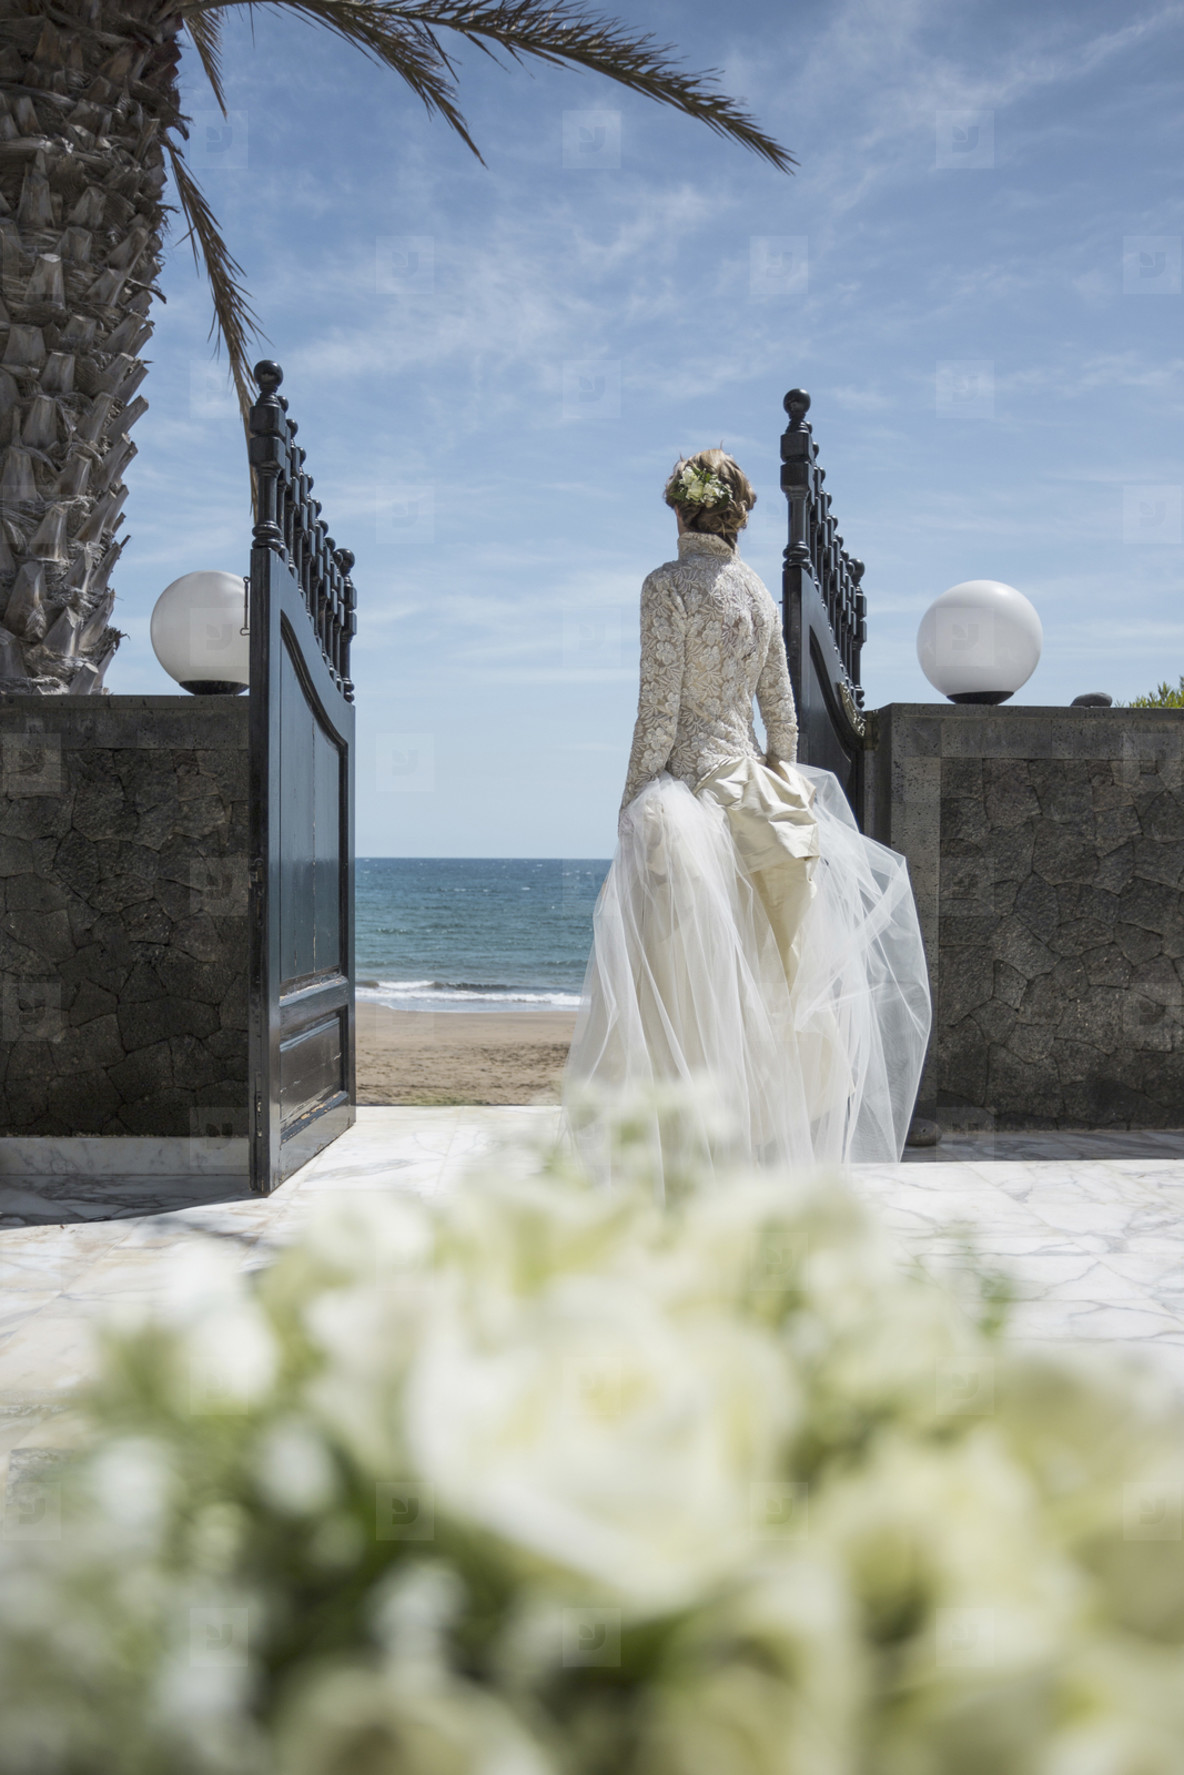 Wedding by the Sea  26